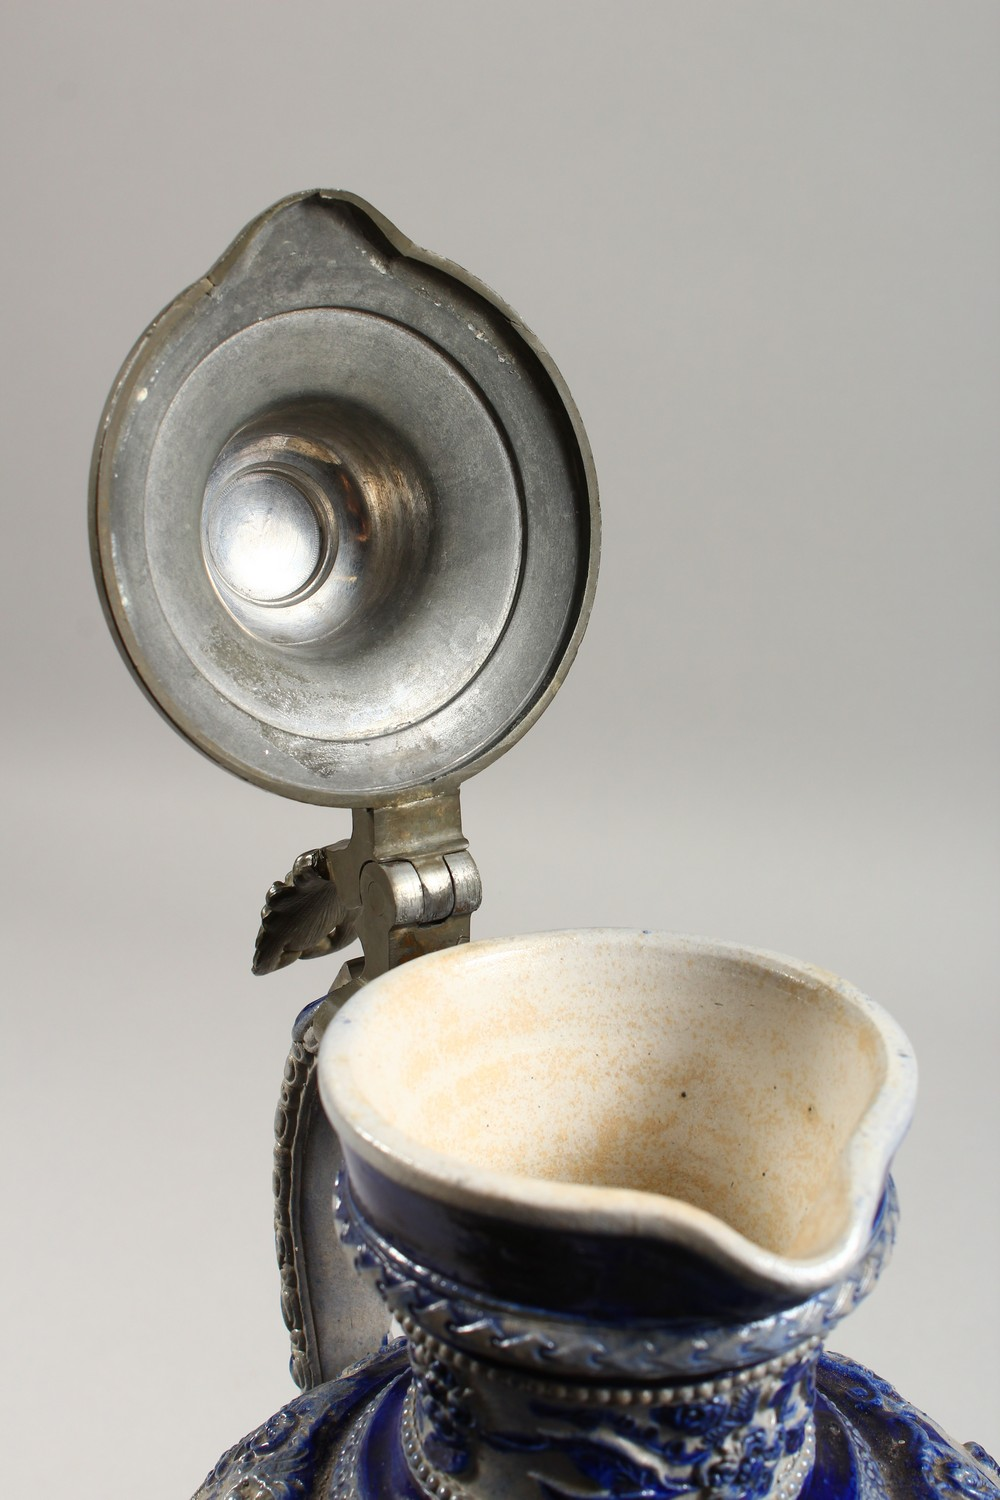 Lot 1150 - A CONTINENTAL STONEWARE JUG, with blue glazed, moulded decoration and pewter lid. 13ins high.